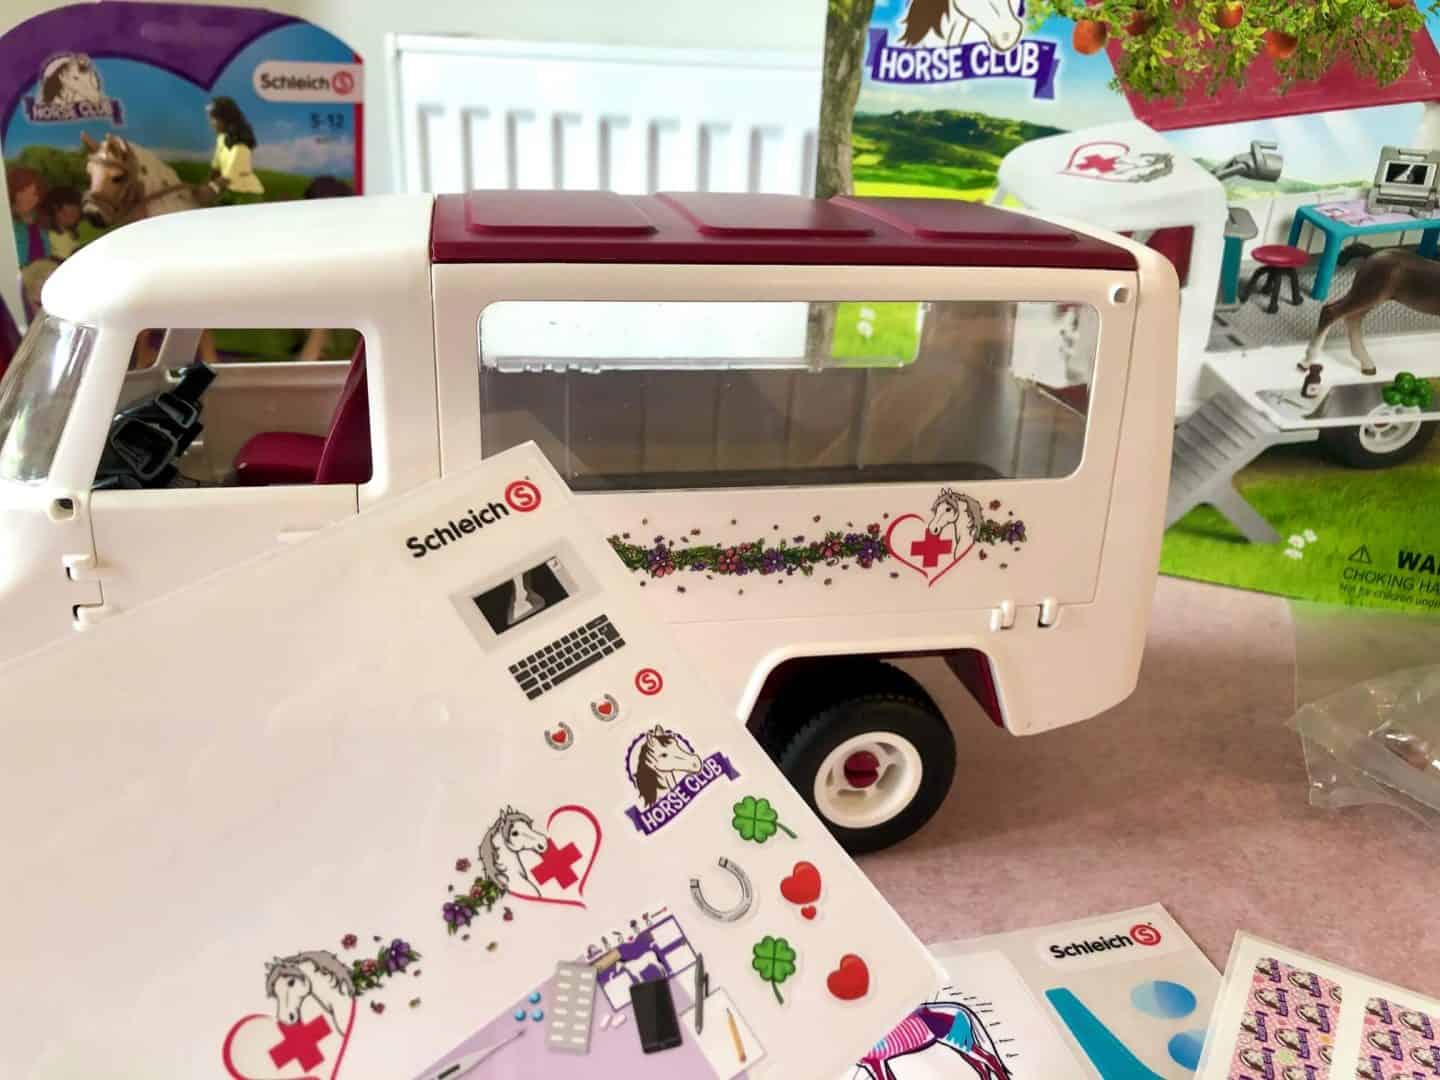 decorate the van with its markings.